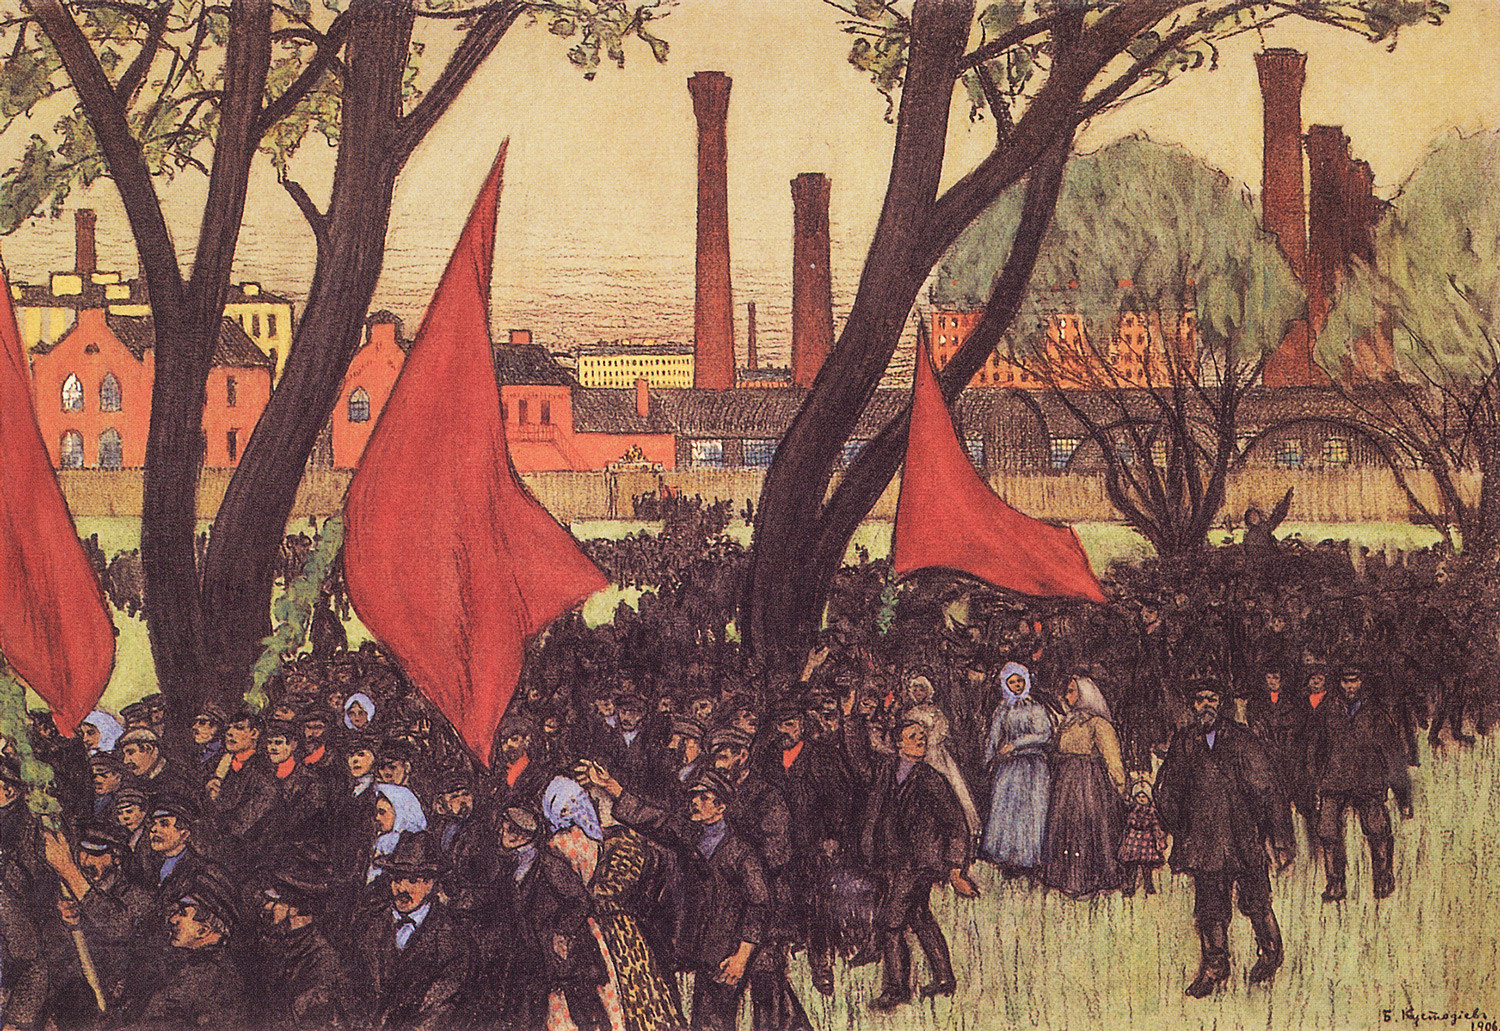 The May 1st demonstration of 1906, portrayed by a Russian artist Boris Kustodiev.